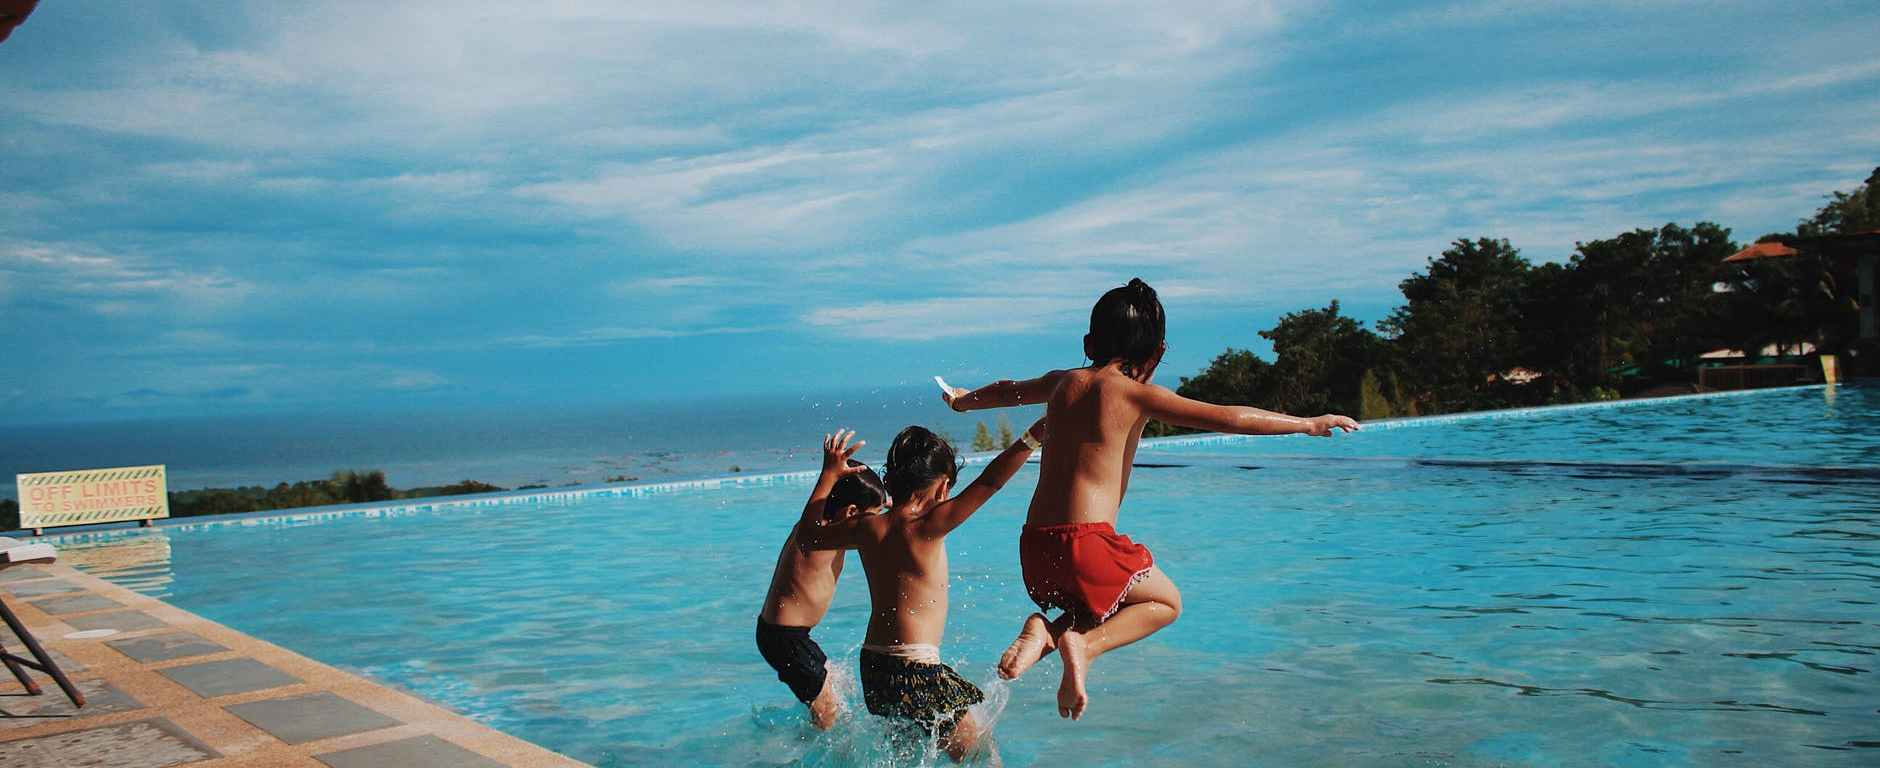 three boy s jumping into the water